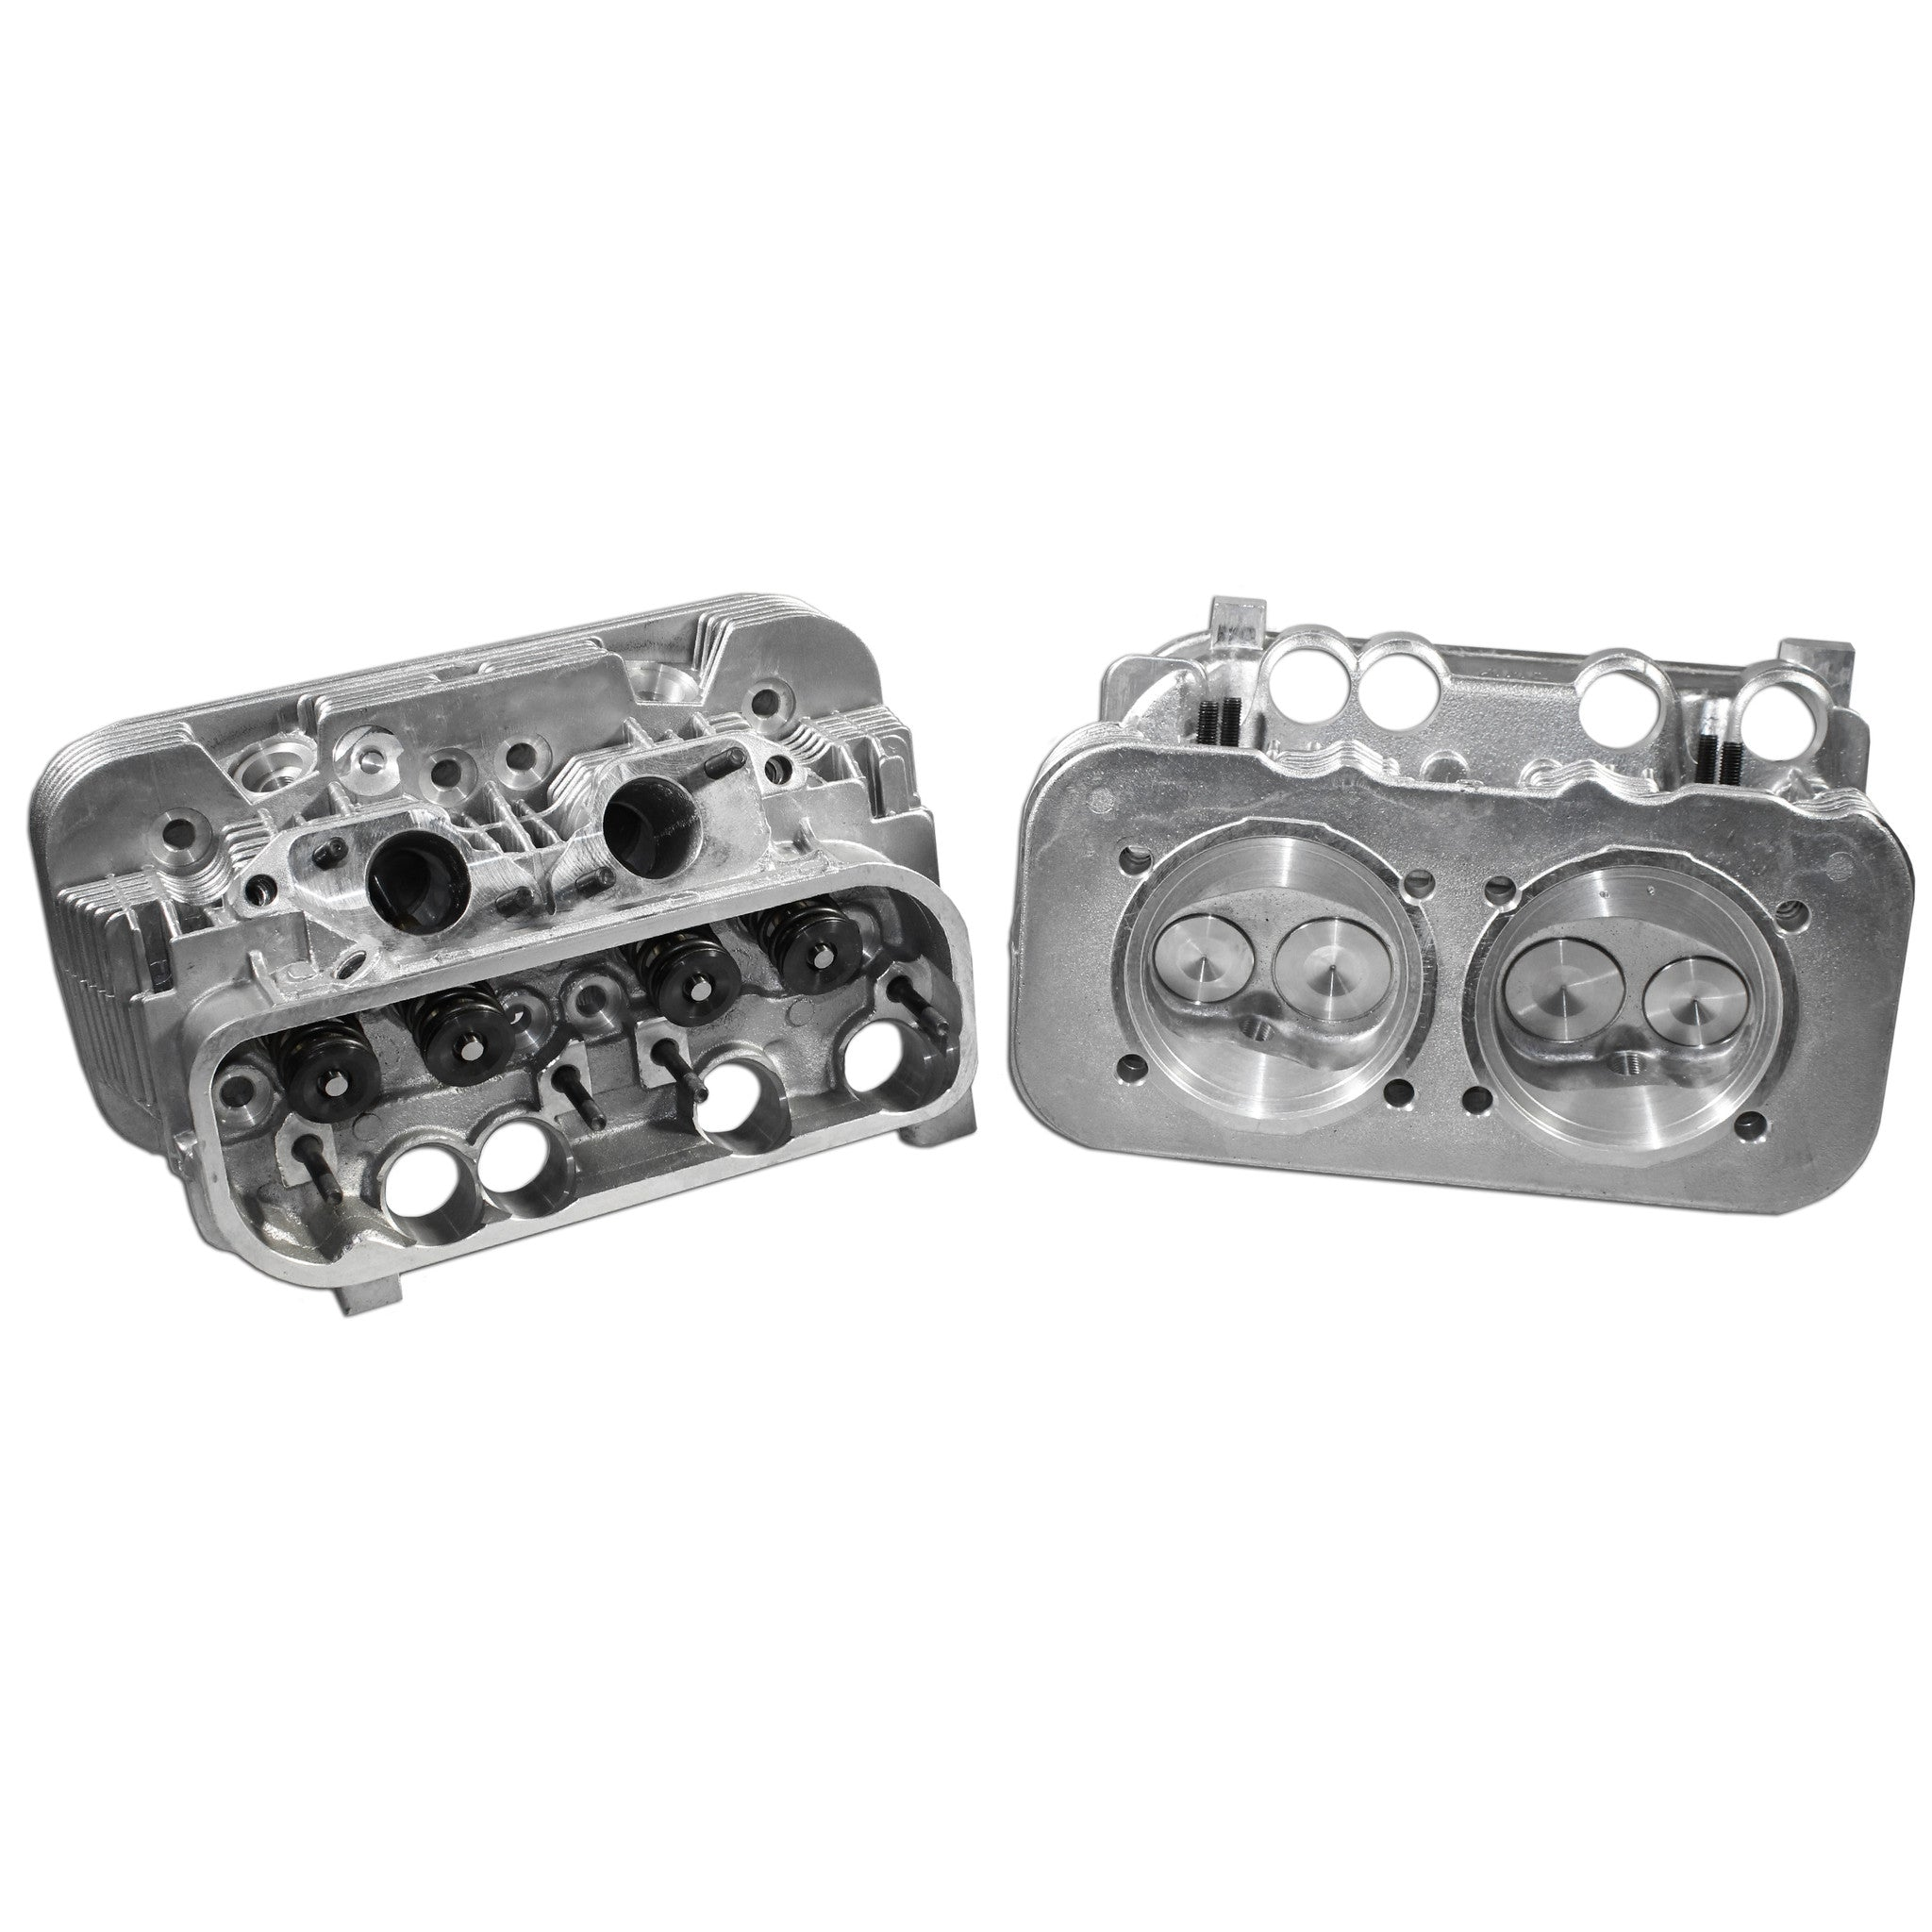 Set of VW Type 4 Porsche 914 Performance Cylinder Heads, 44X36 | AA